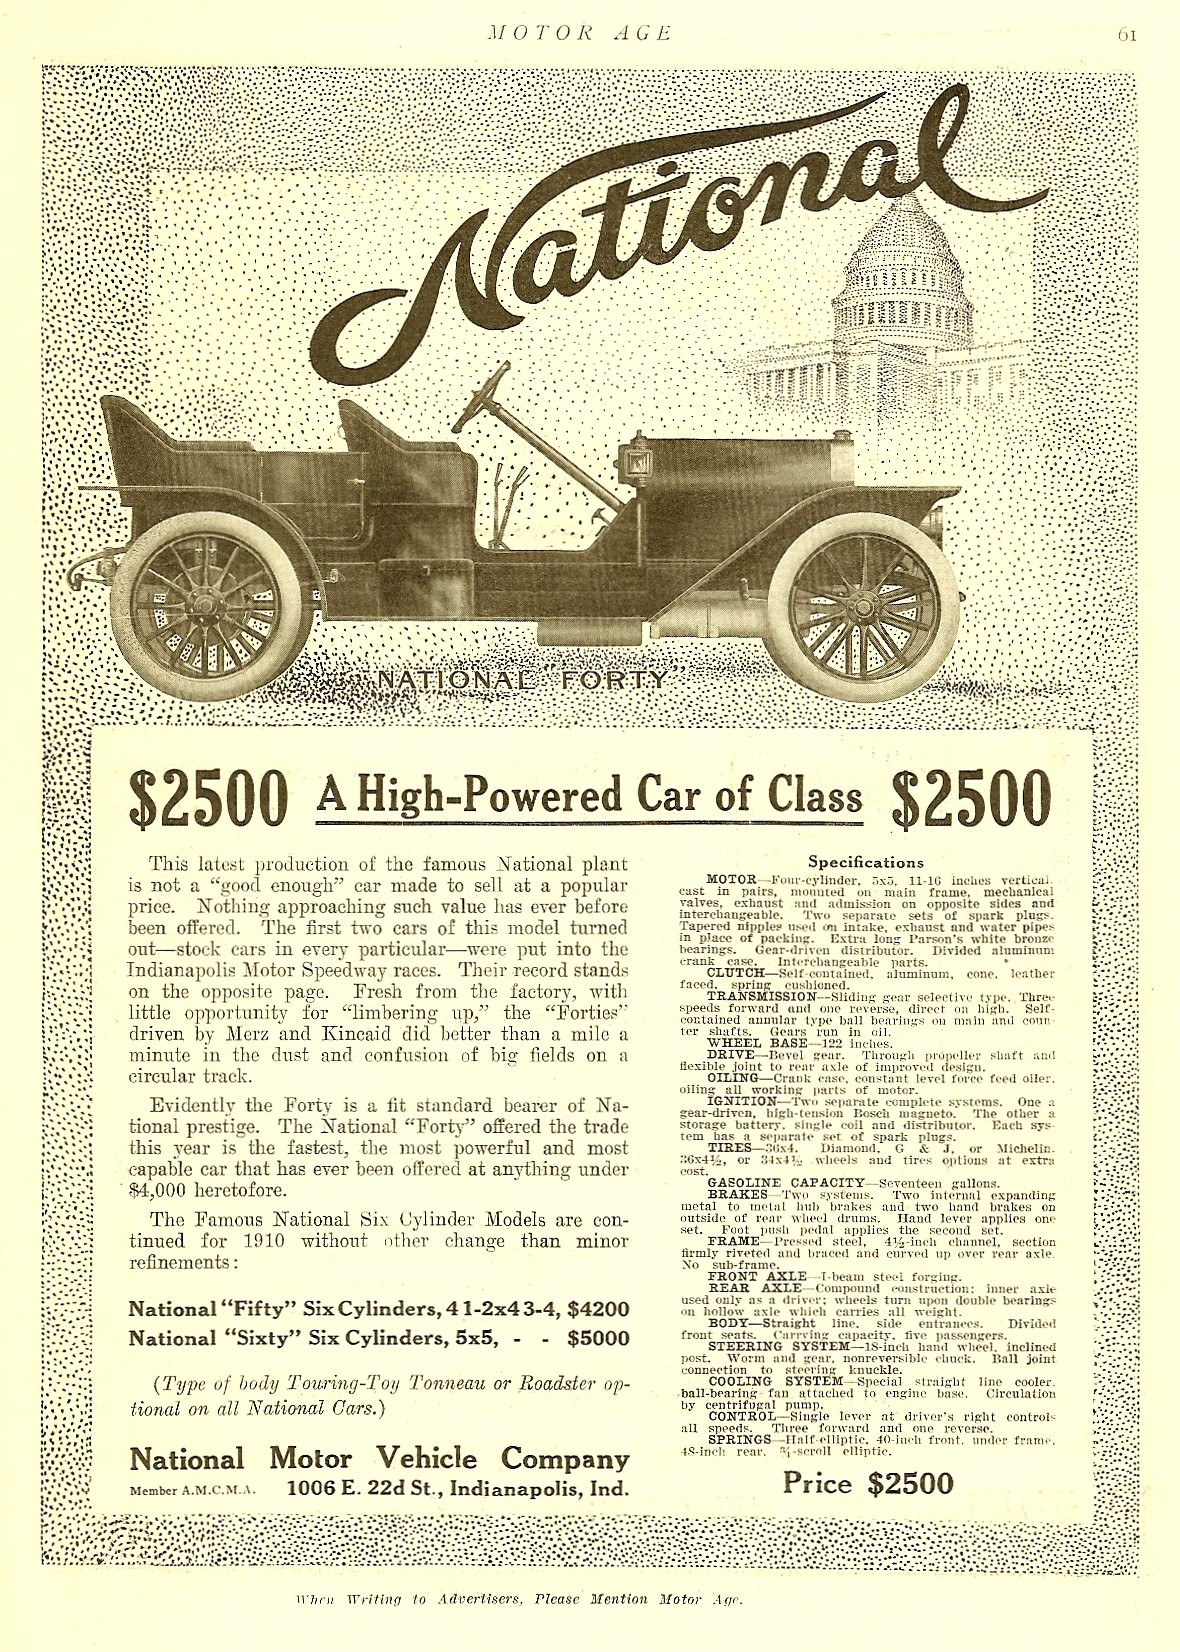 "1909 9 1910 NATIONAL National ""Forty"" 1910 Model A High-Powered Car of Class $2,500 MOTOR AGE Sept 1909 8.5″x11.75″ page 61"